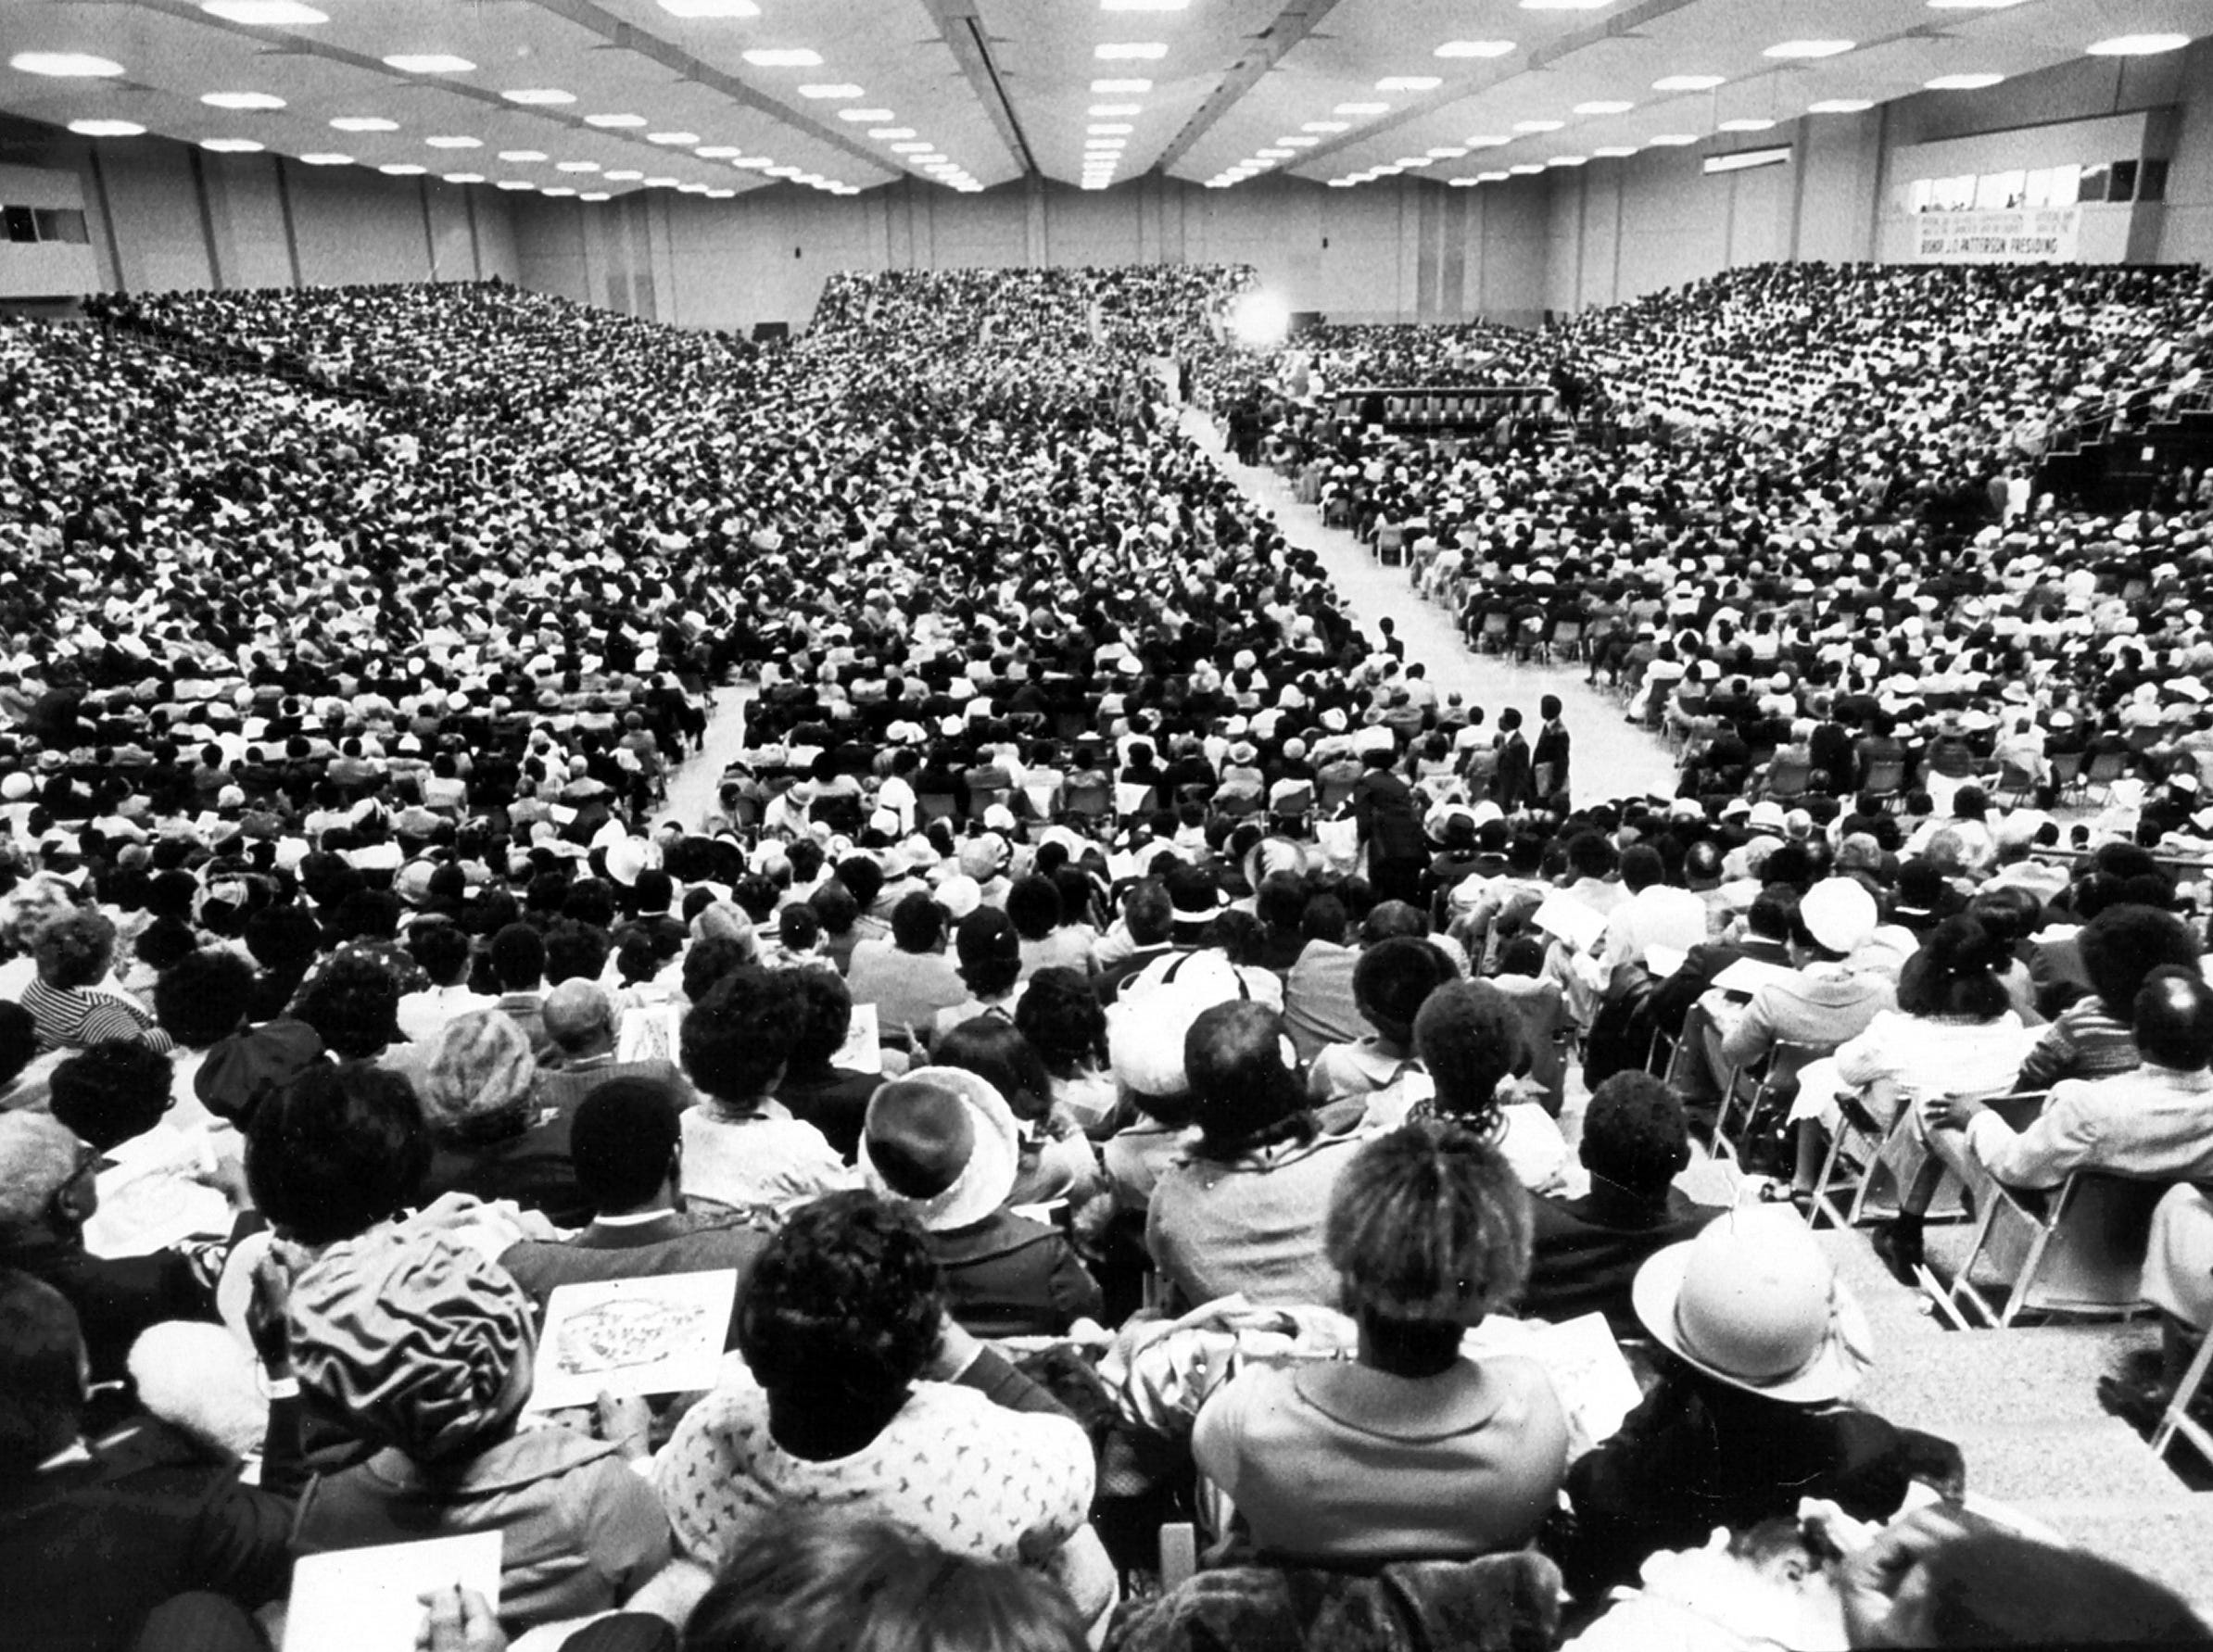 A huge crowd fills the Memphis Cook Convention Center on 14 Nov 1976 to hear Bishop J.O. Patterson speak to the Church of God In Christ convocation.